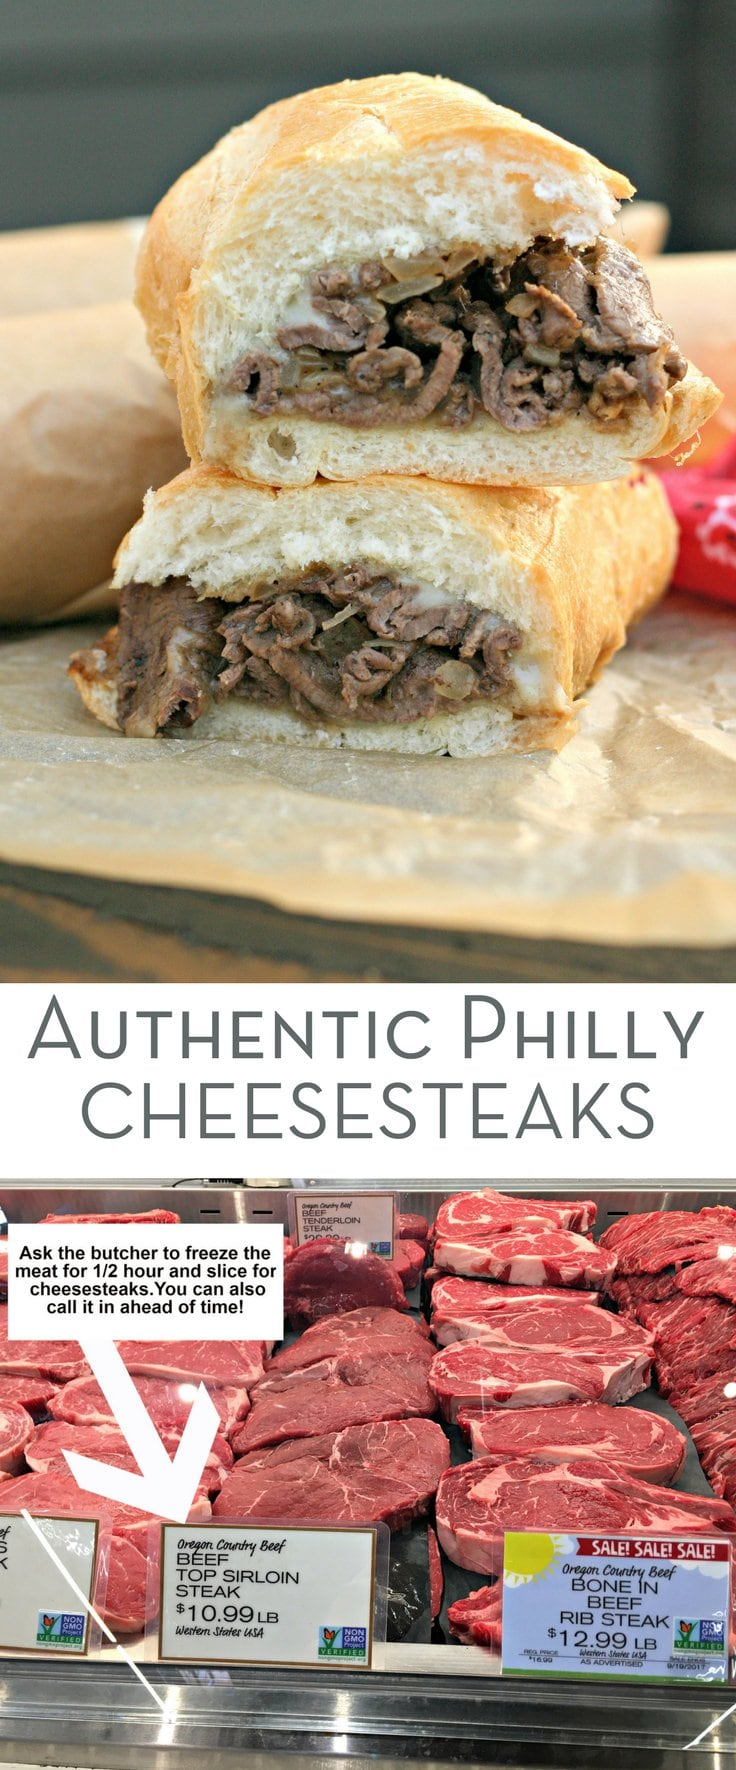 Authentic Philly Cheesesteaks! How To Make a Homemade Philly Cheesesteak with a Gluten Free option and details on every step and ingredient!